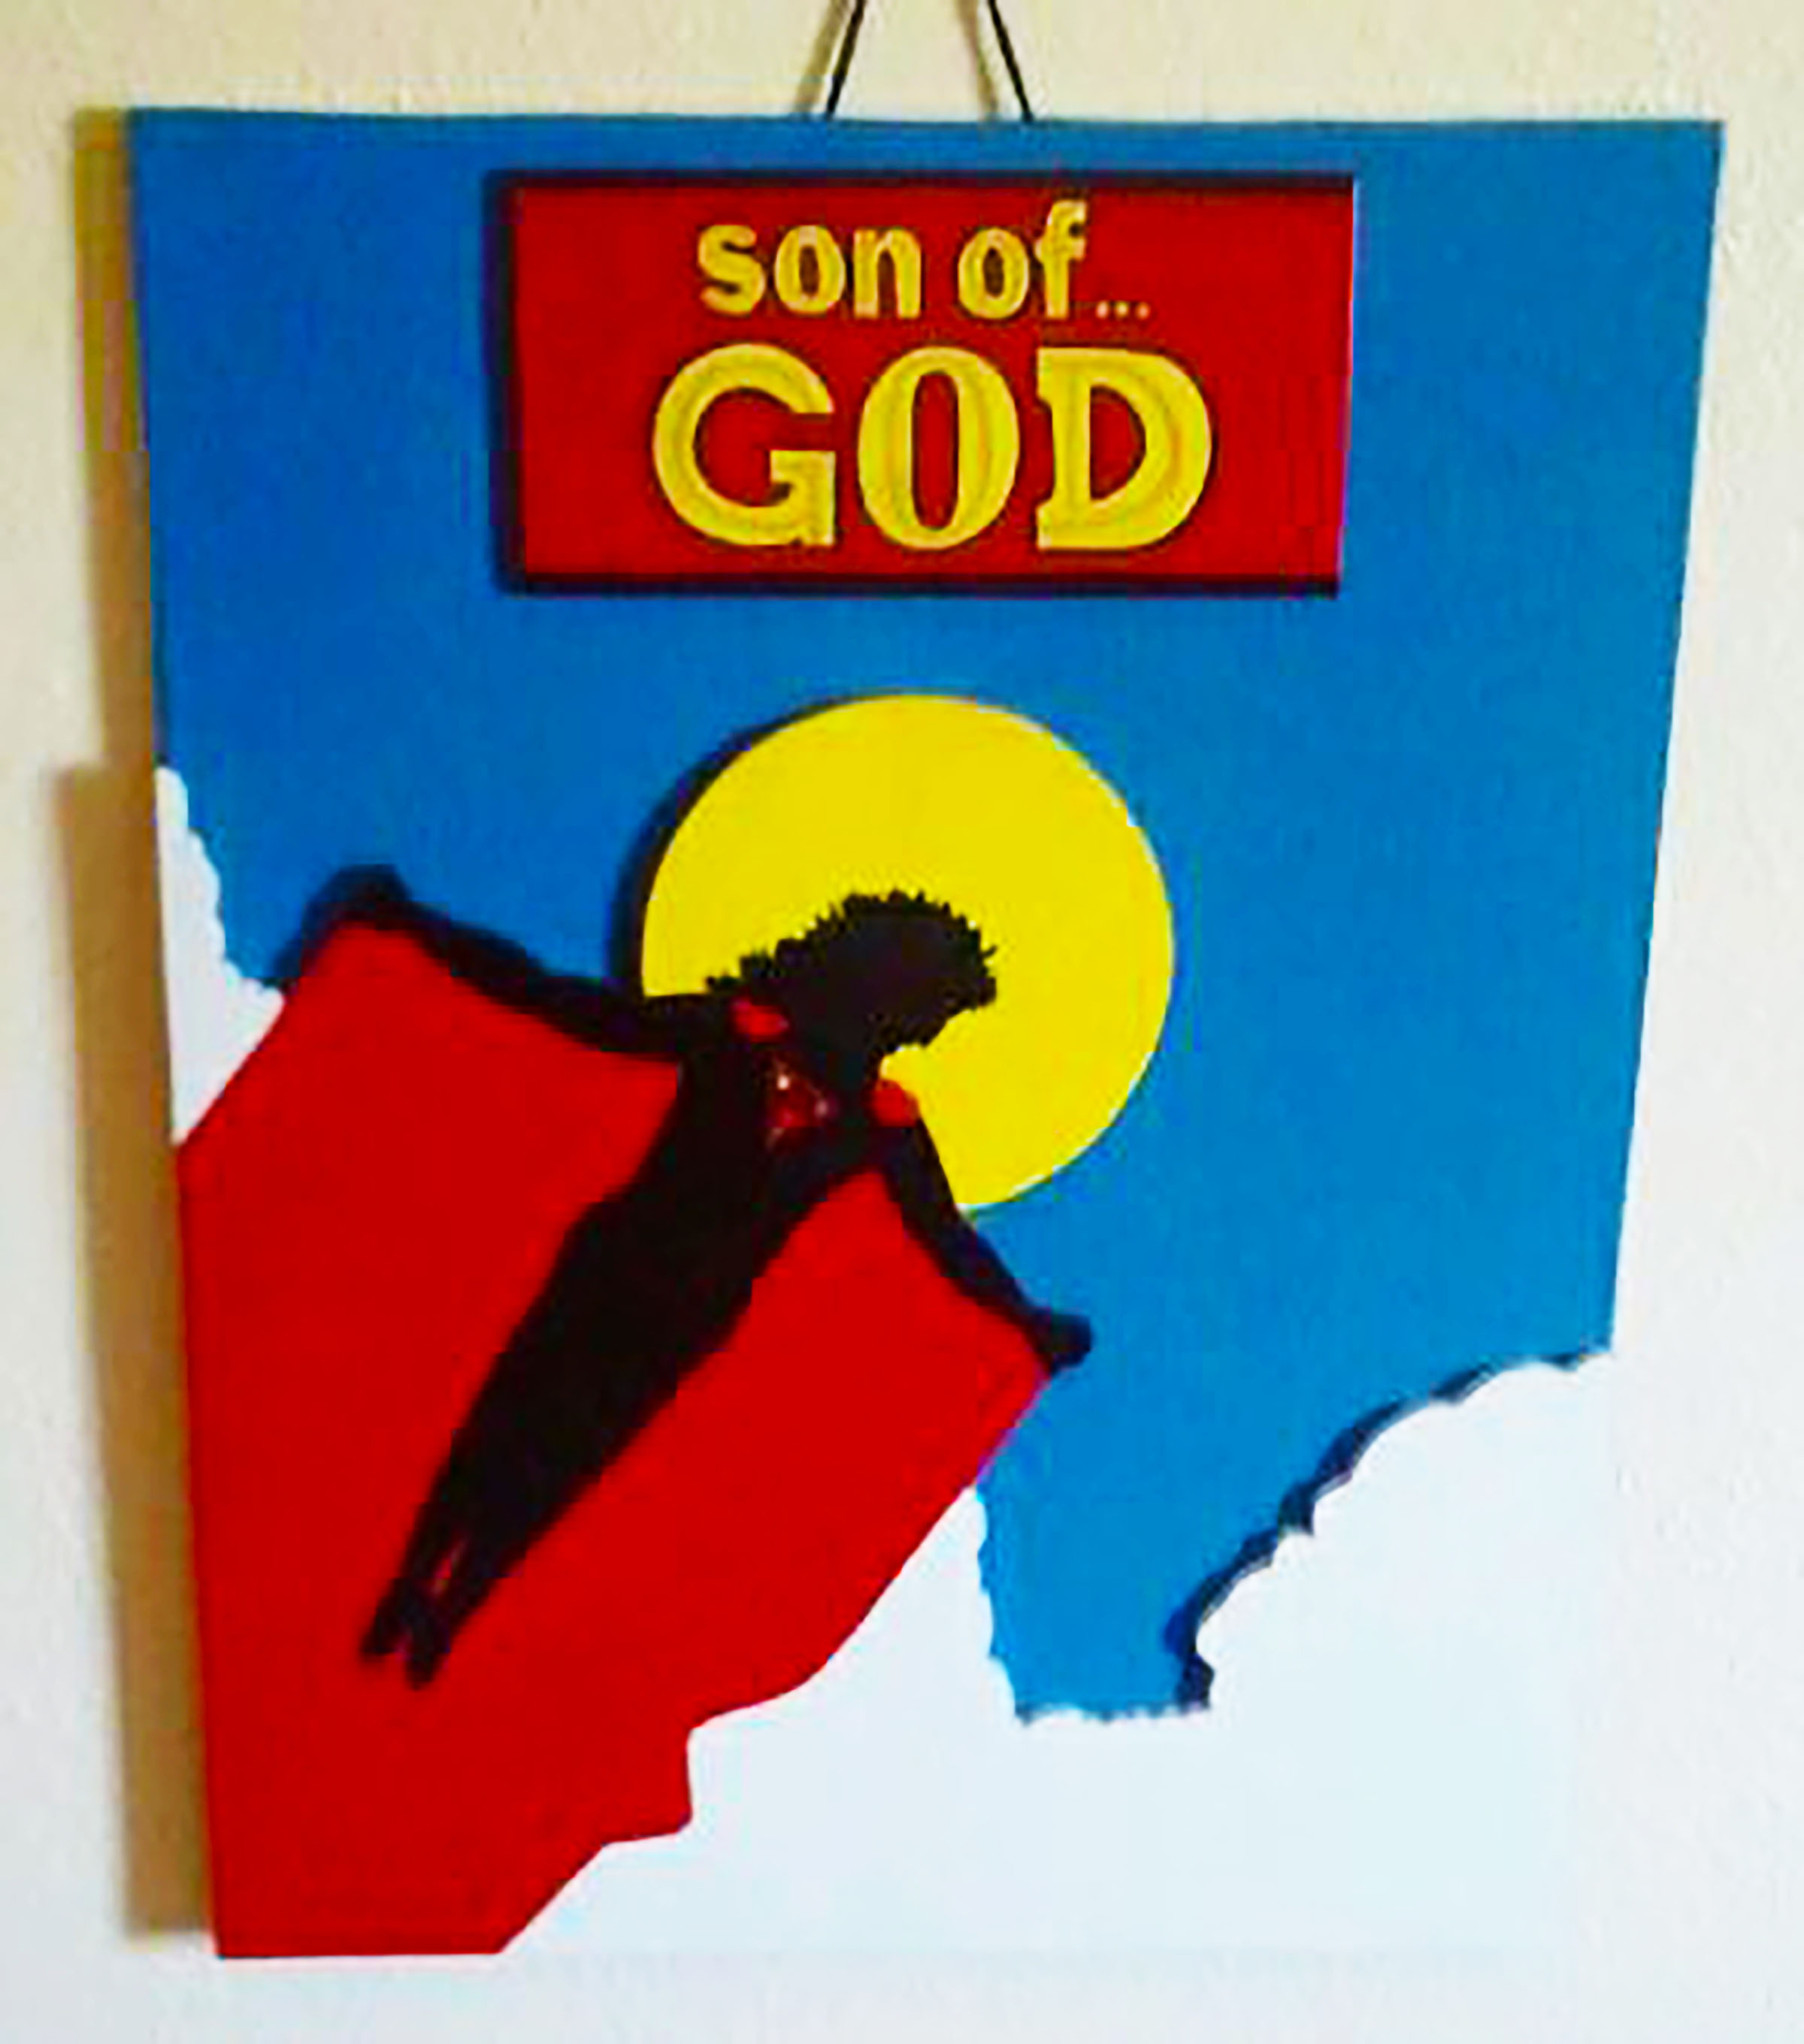 Son of God(E).jpg